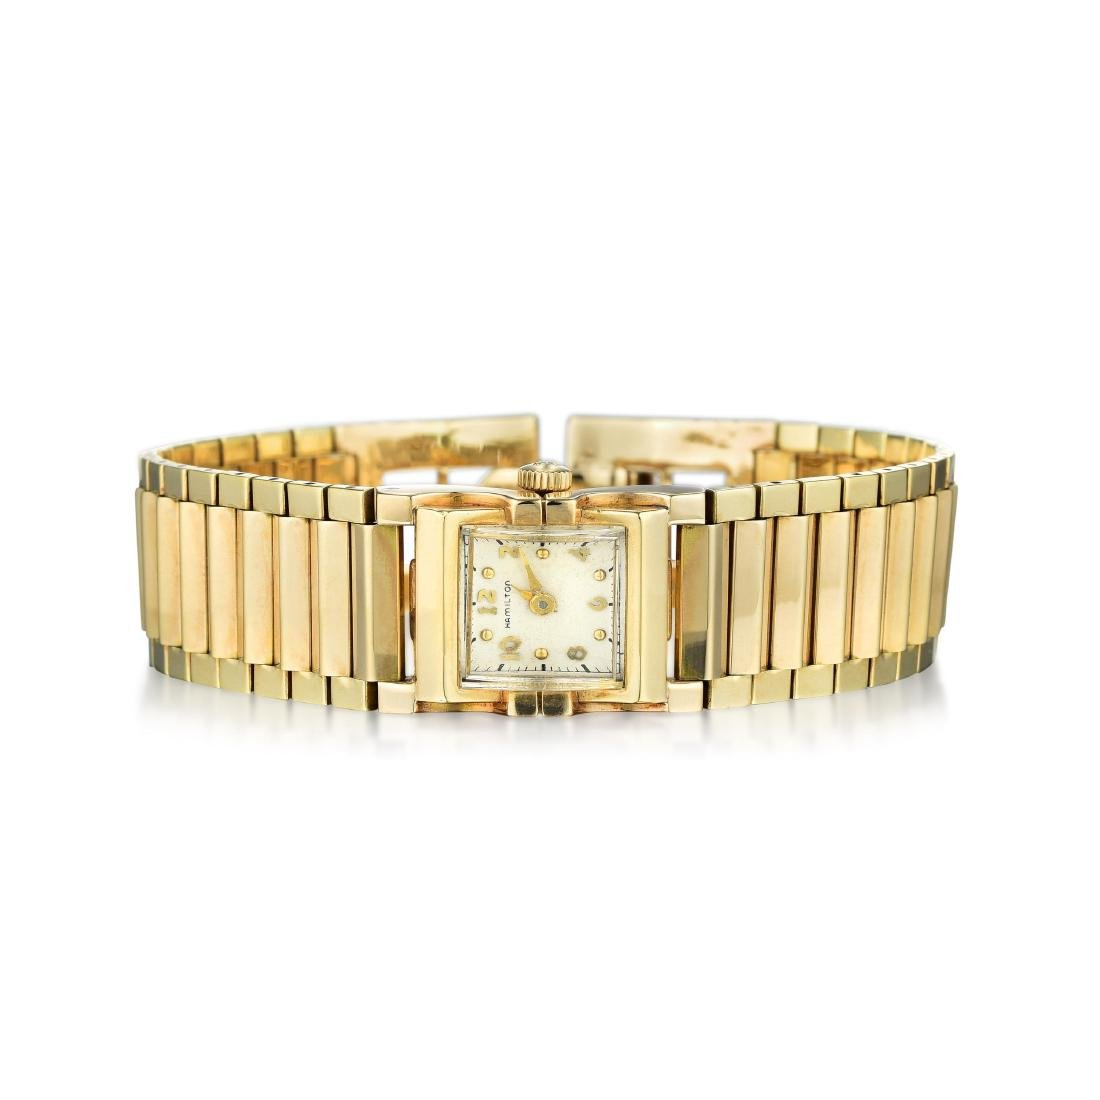 A 14K Gold Ladies Hamilton Watch